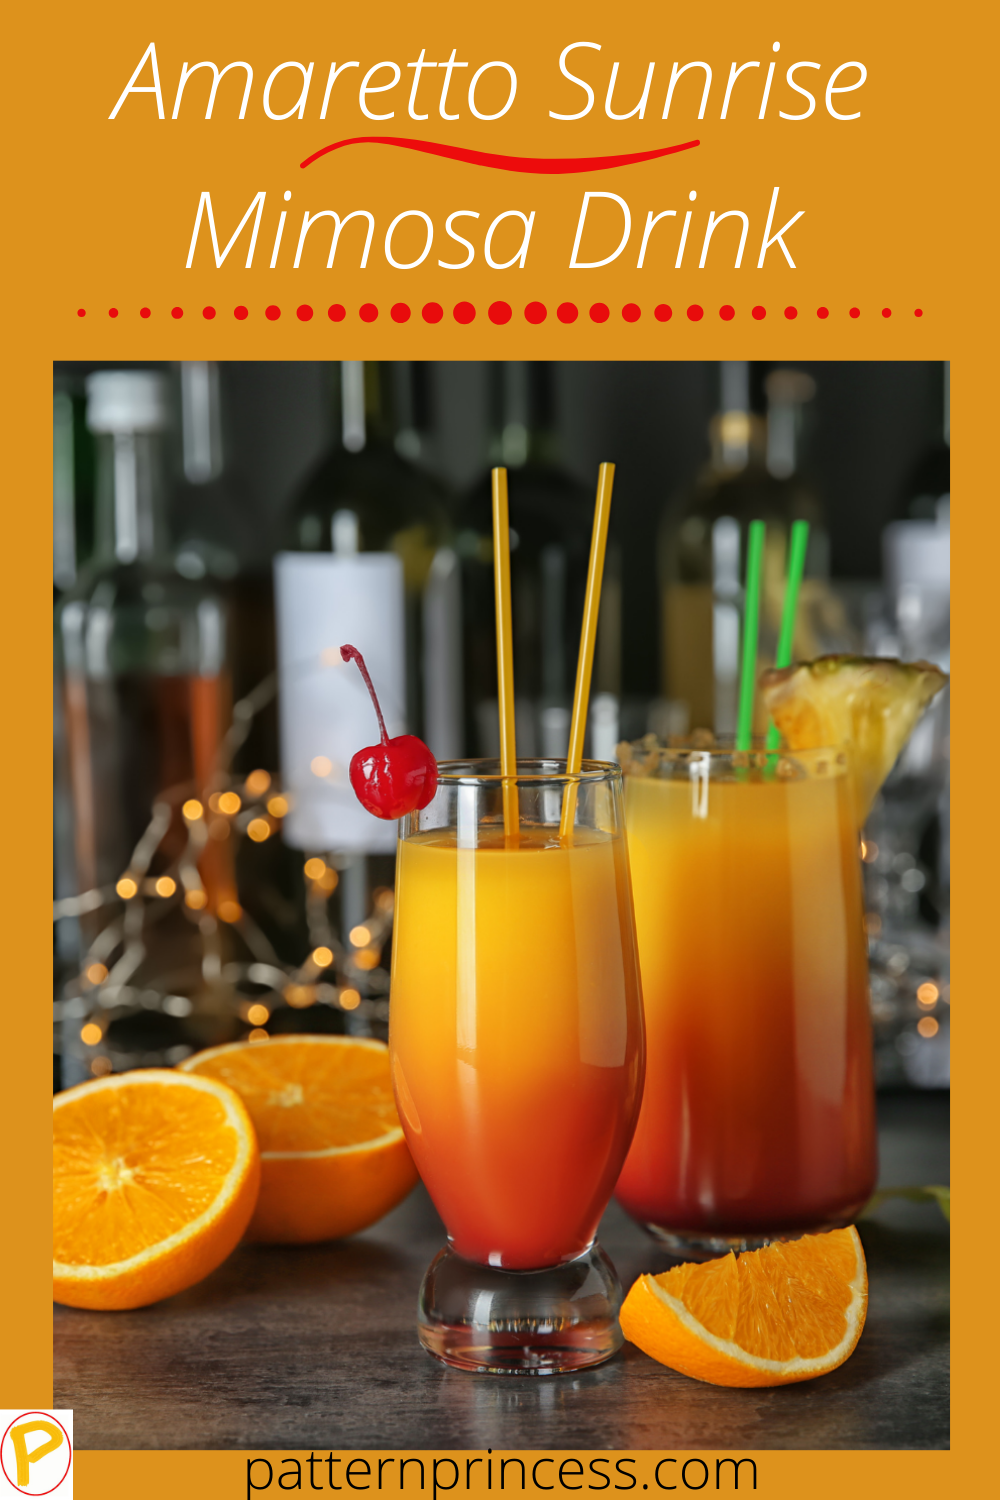 Amaretto Sunrise Mimosa Drink